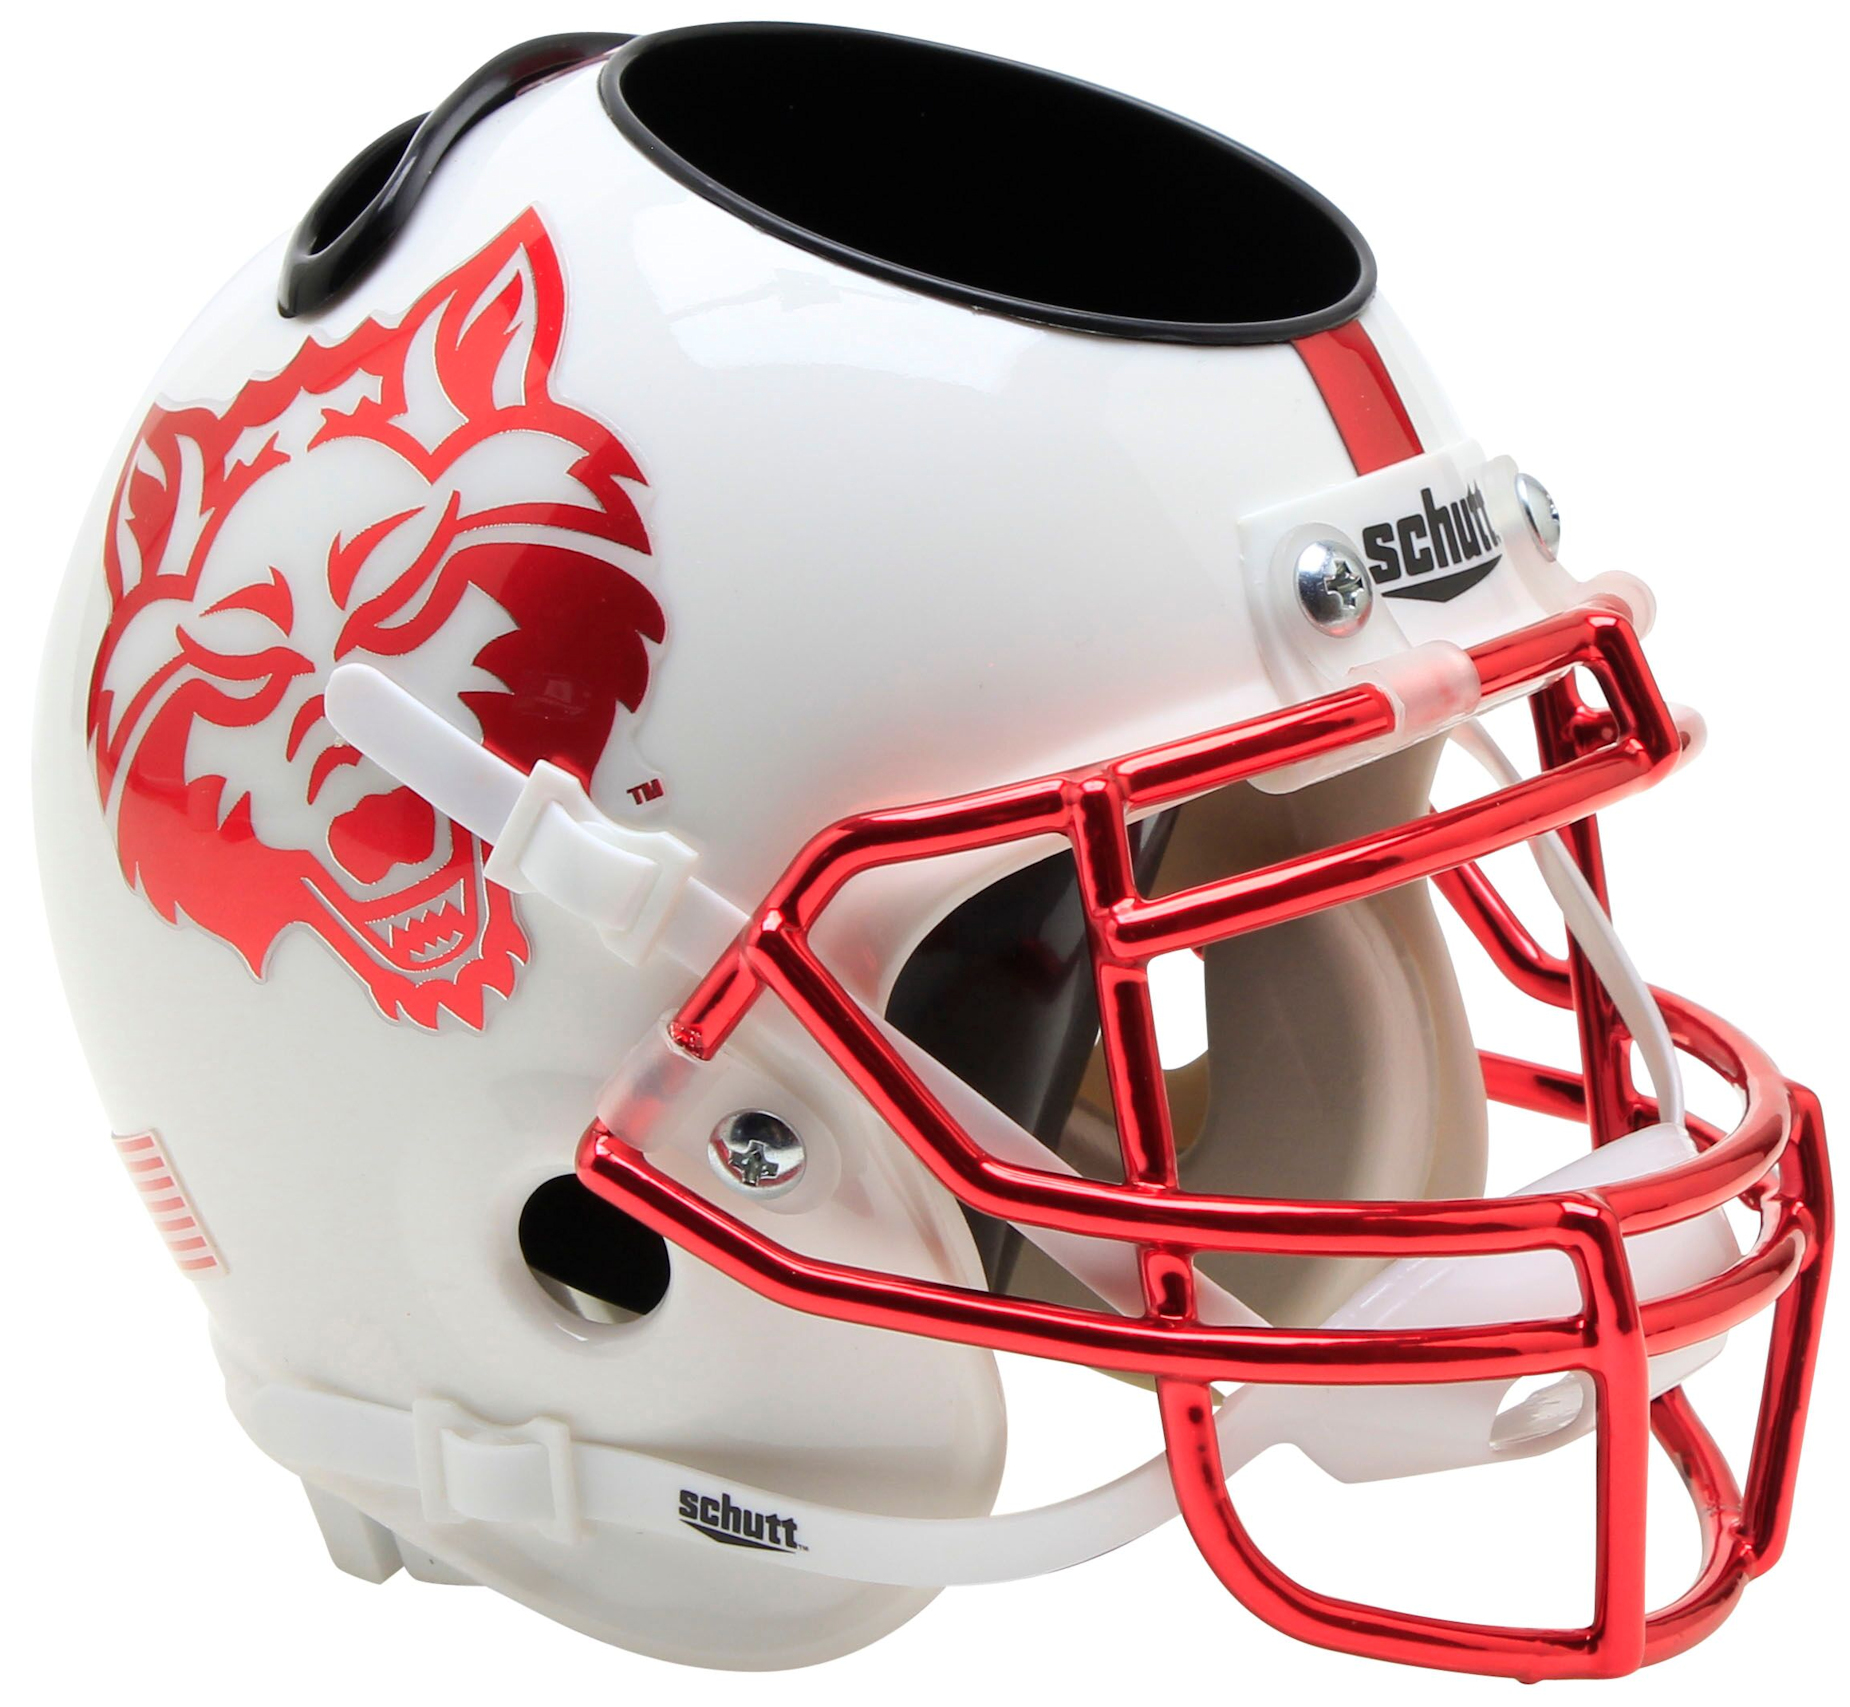 Arkansas State Red Wolves Miniature Football Helmet Desk Caddy <B>White with Chrome Mask</B>